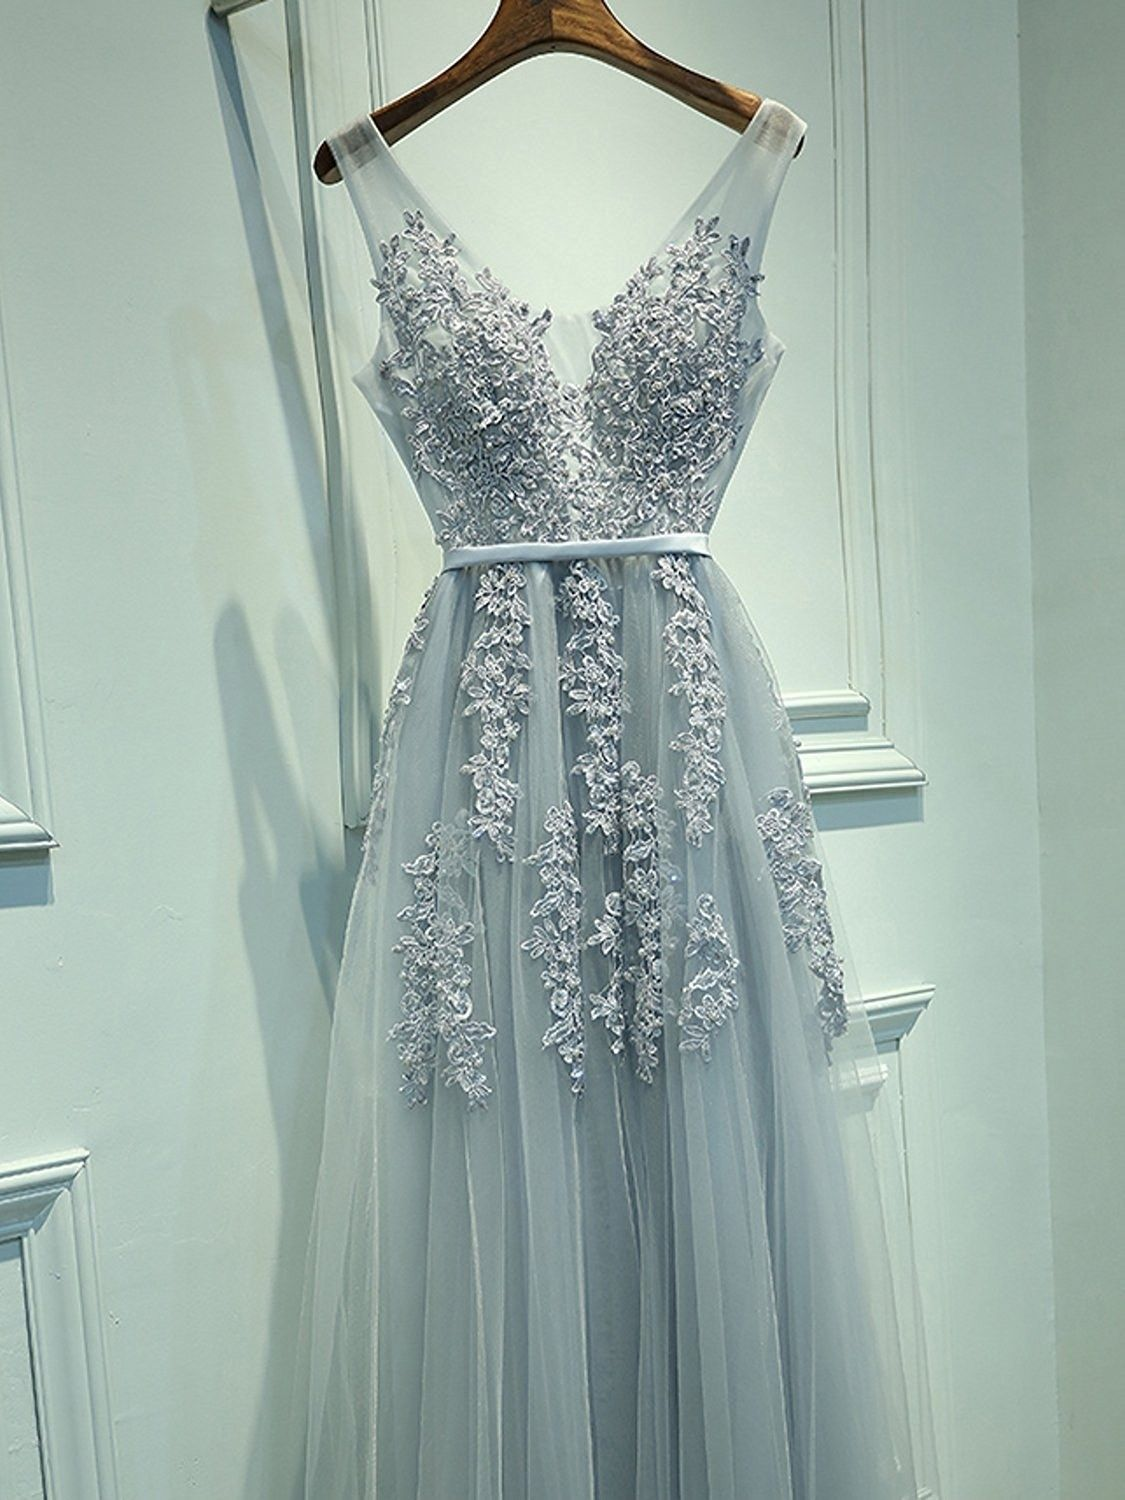 29 Of The Prettiest Wedding Dresses You\'ve Ever Seen | Pretty ...